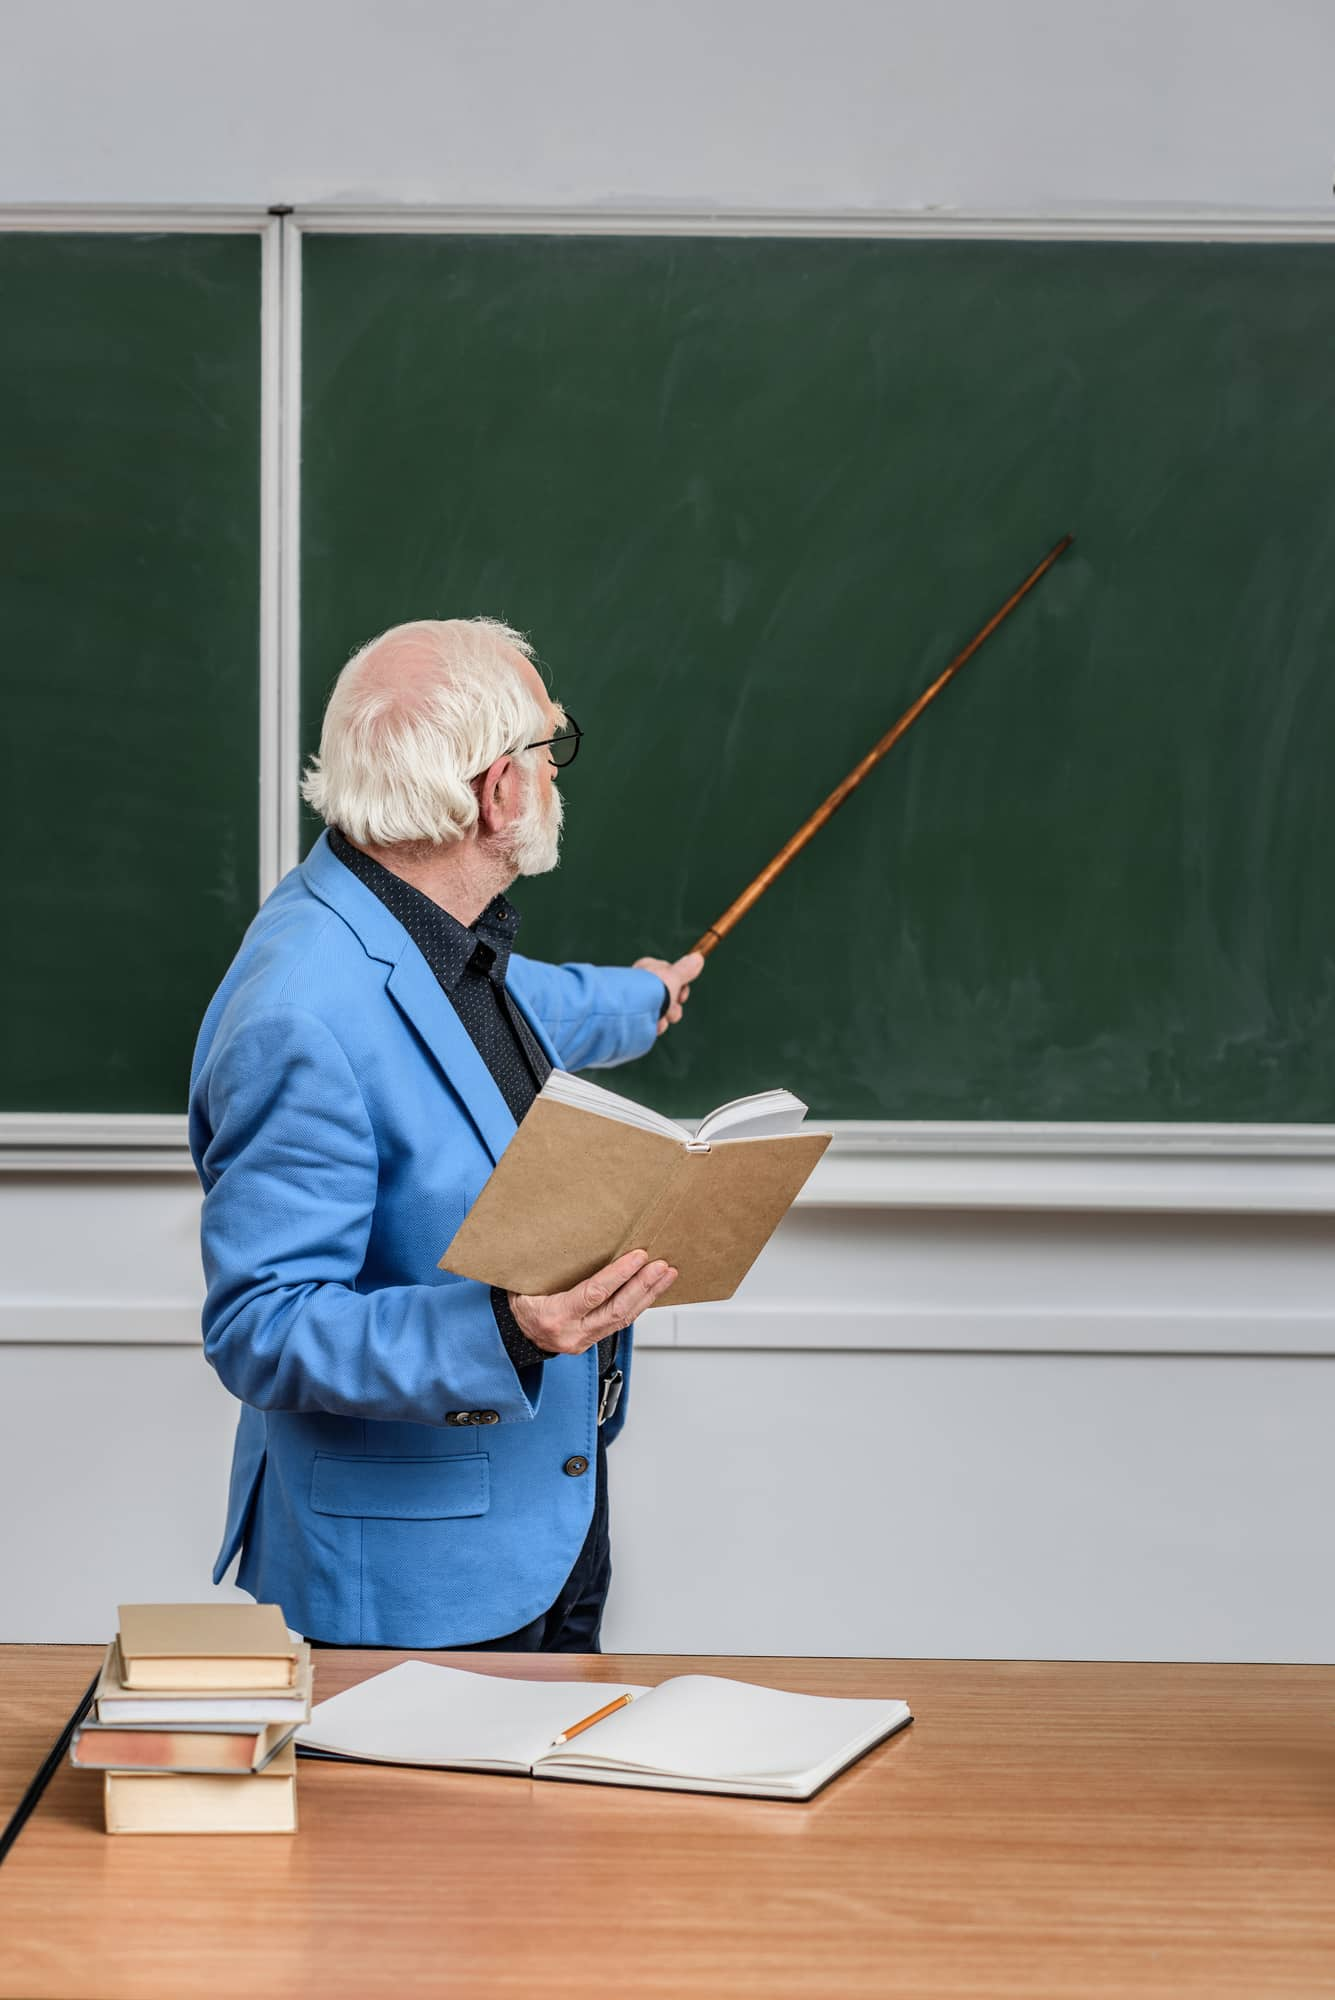 Elderly teacher lecturing with a pointer stick